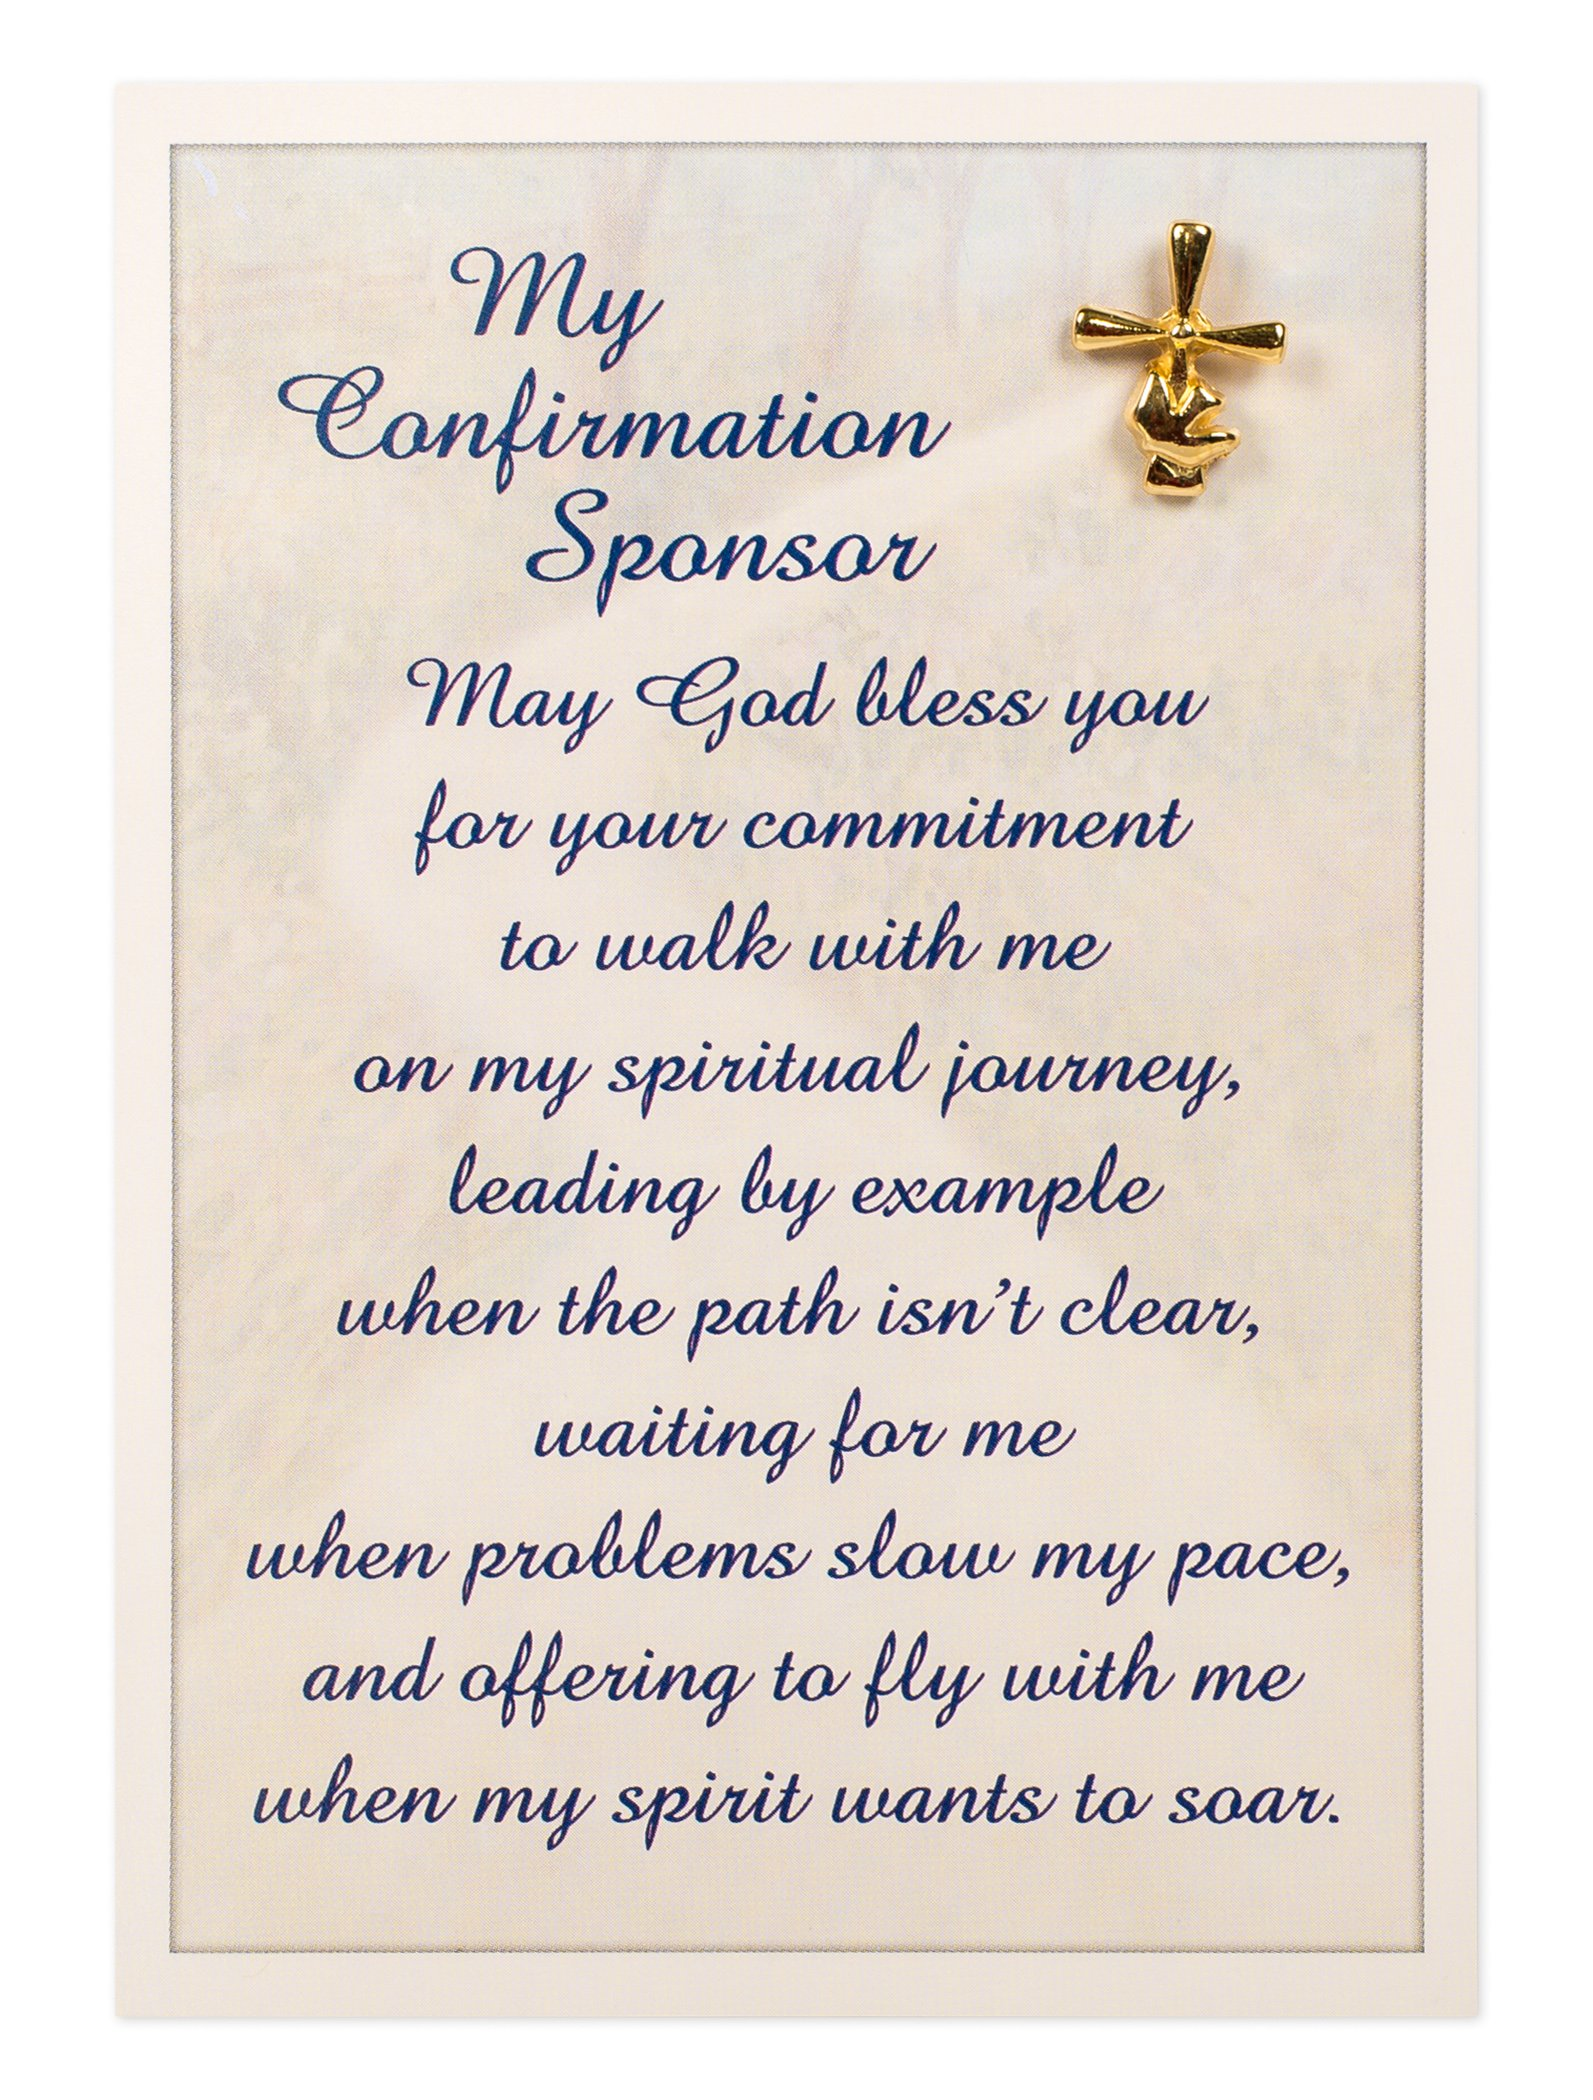 Cheap Confirmation Card Messages Find Confirmation Card Messages